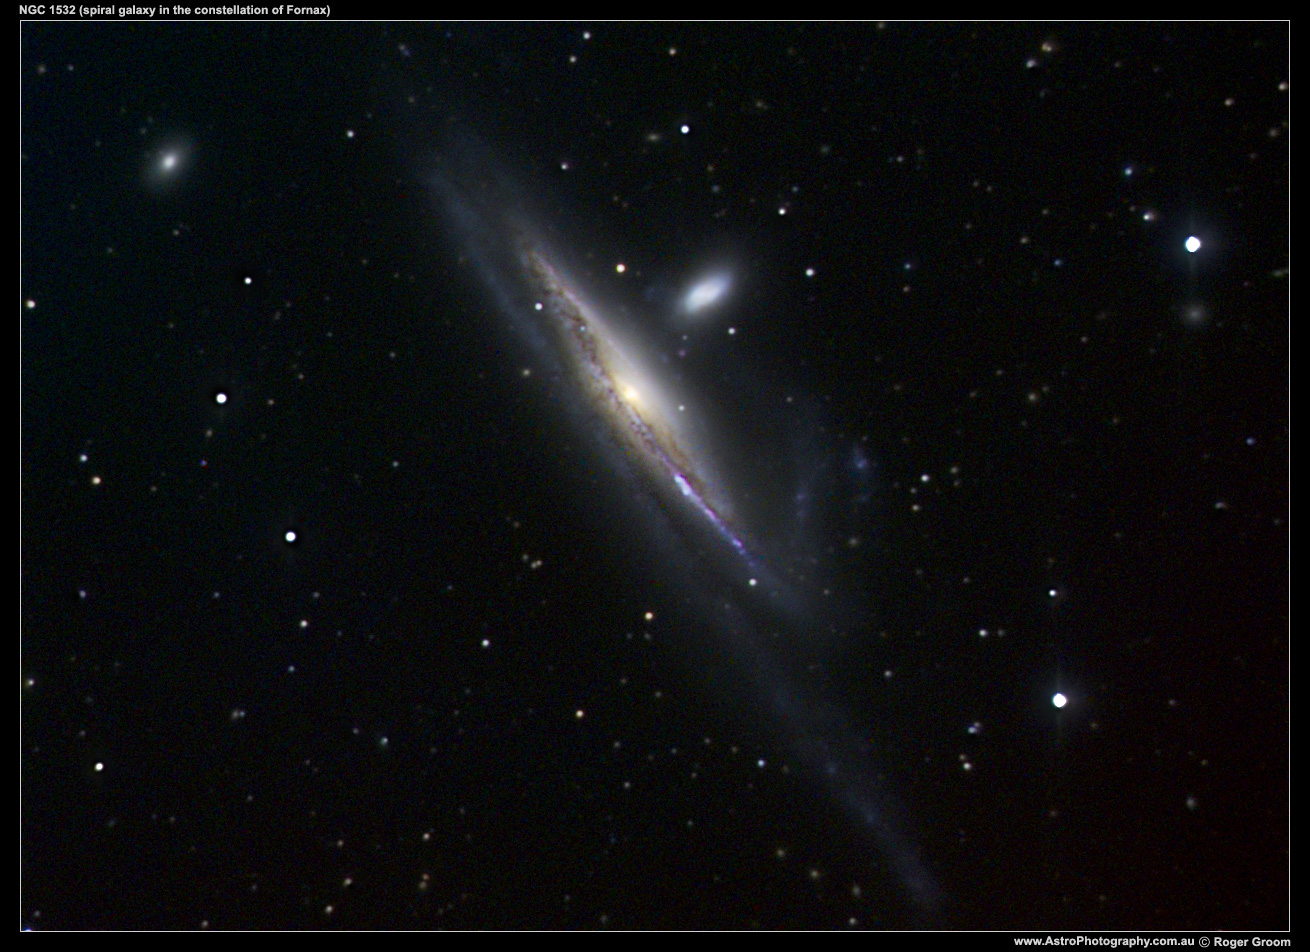 NGC 1532 (galaxy in the constellation of Fornax)